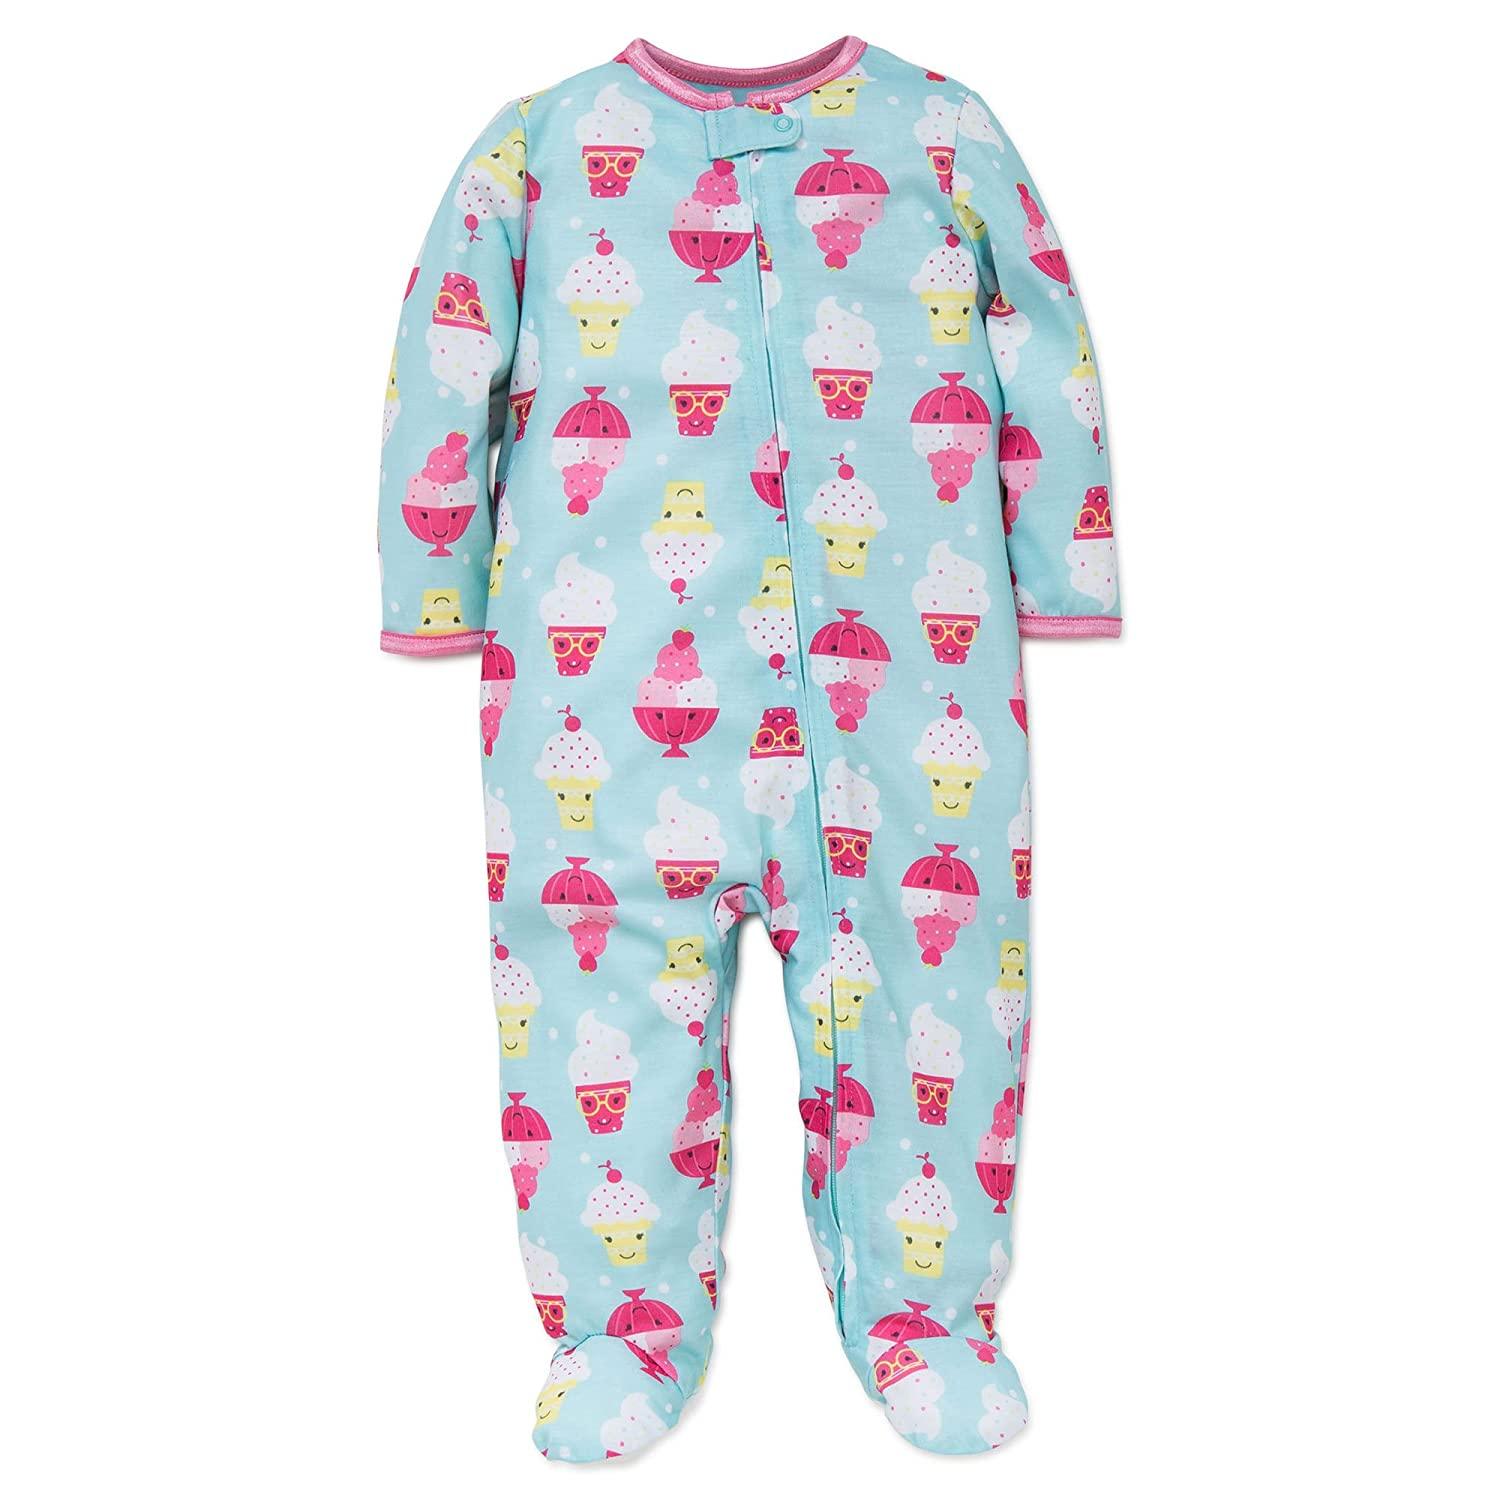 04e0e04092 Amazon.com  Little Me Baby Girl Ice Cream Soft Zip Footie Pajamas Footed  Sleeper Green 24M  Clothing